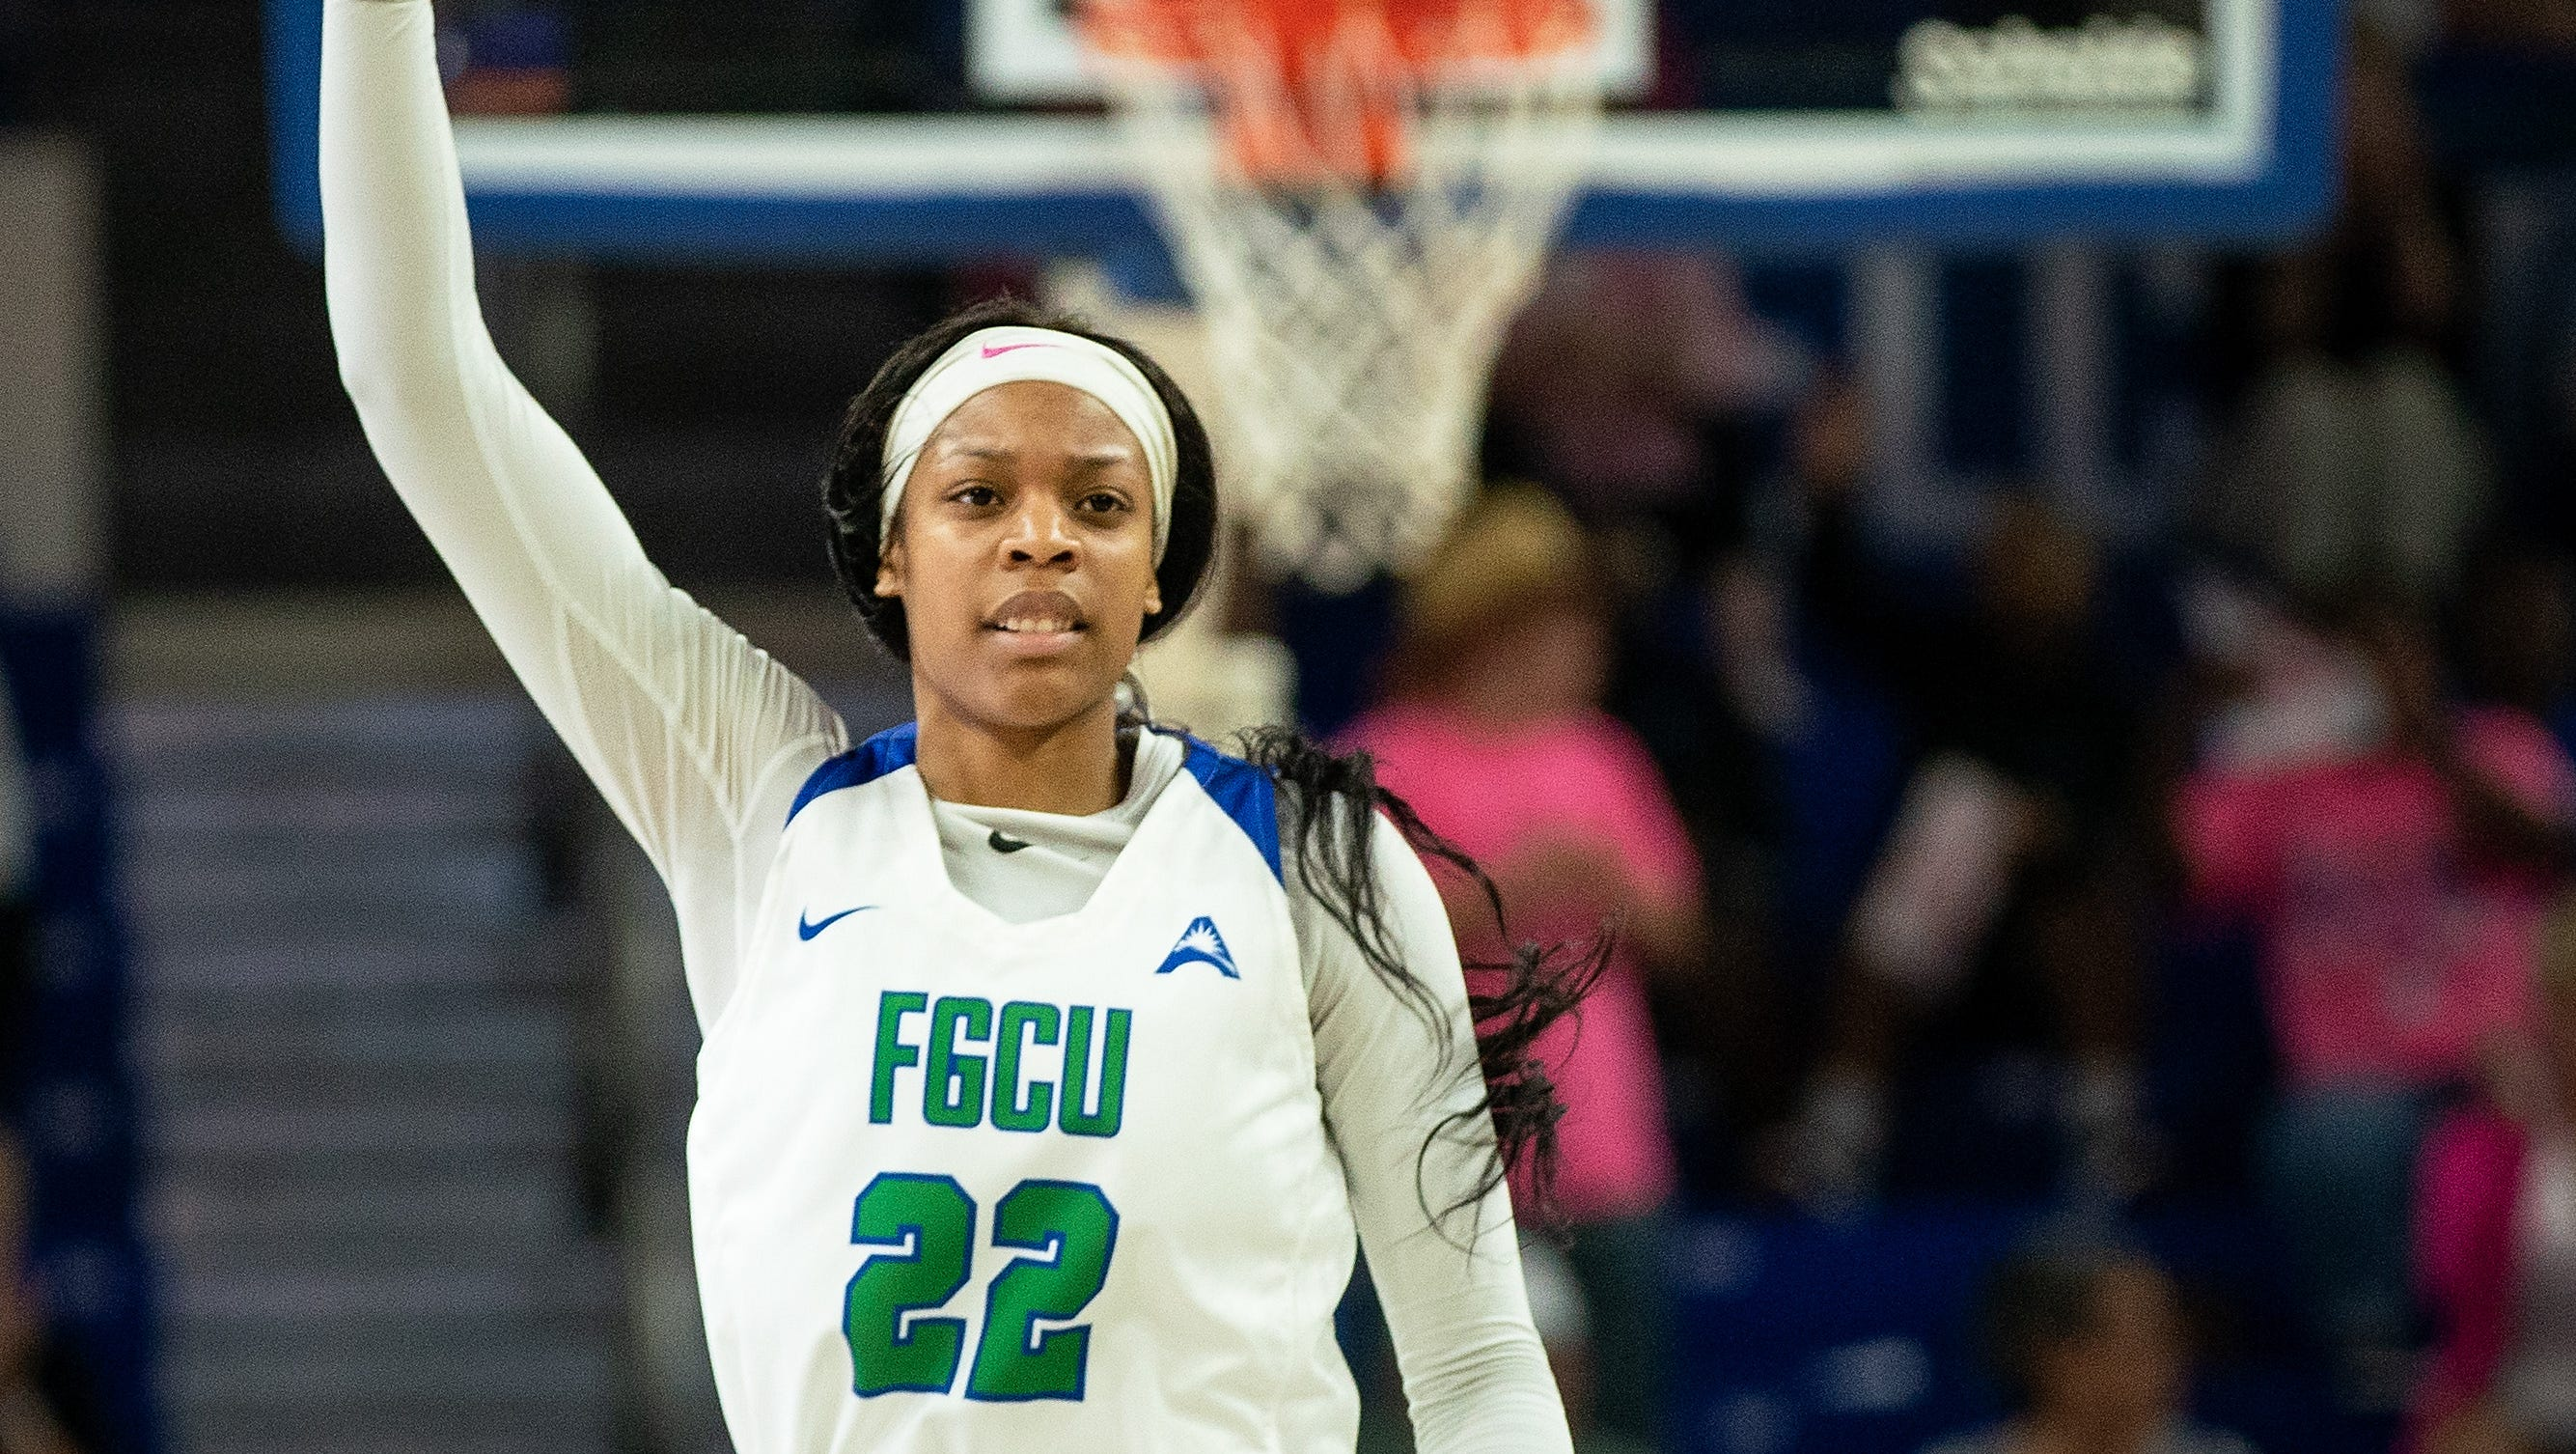 FGCU's Destiny Washington puts the sign up after making three points shot during FGCU's home game against North Alabama at Alico Arena in Fort Myers.